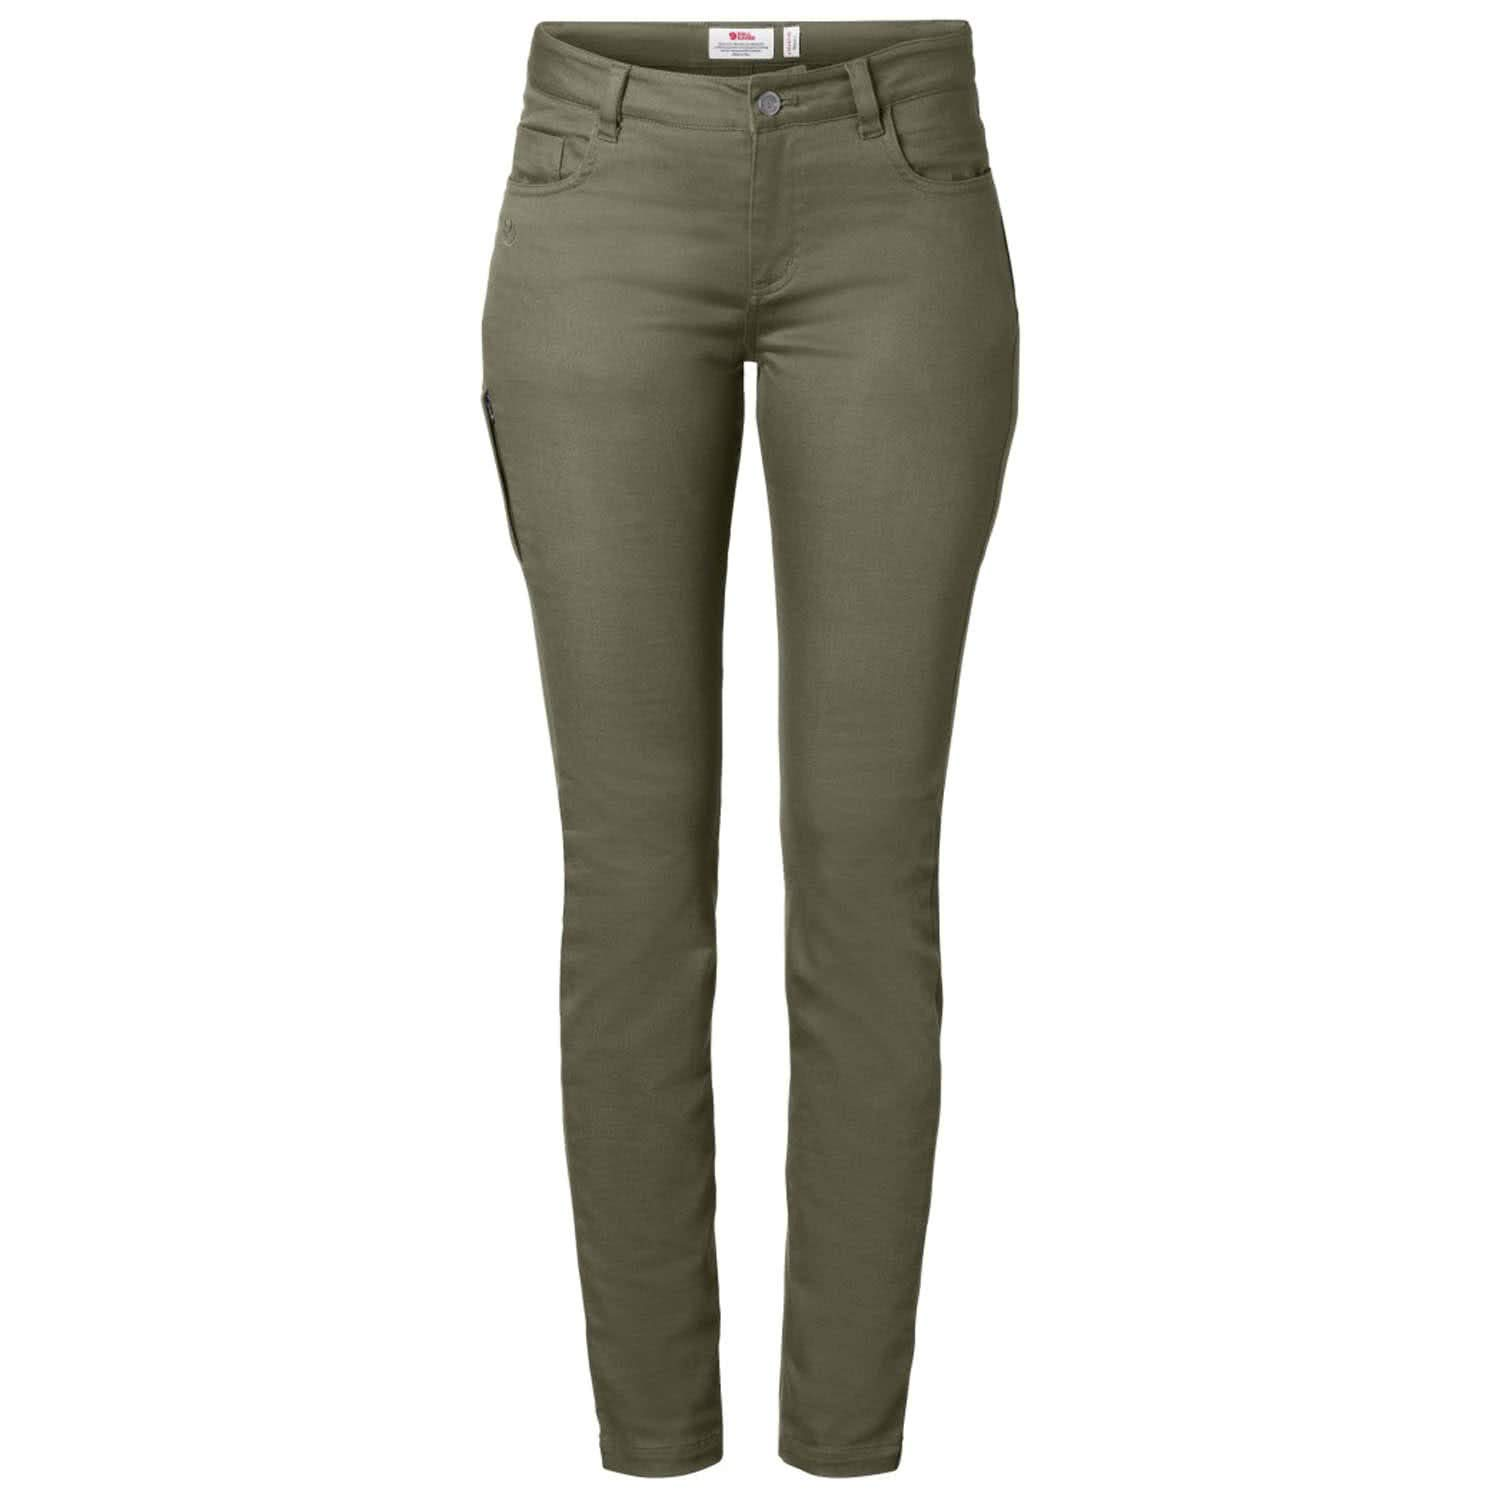 Fjällräven High Coast Stretch Trousers Damens - Outdoorhose